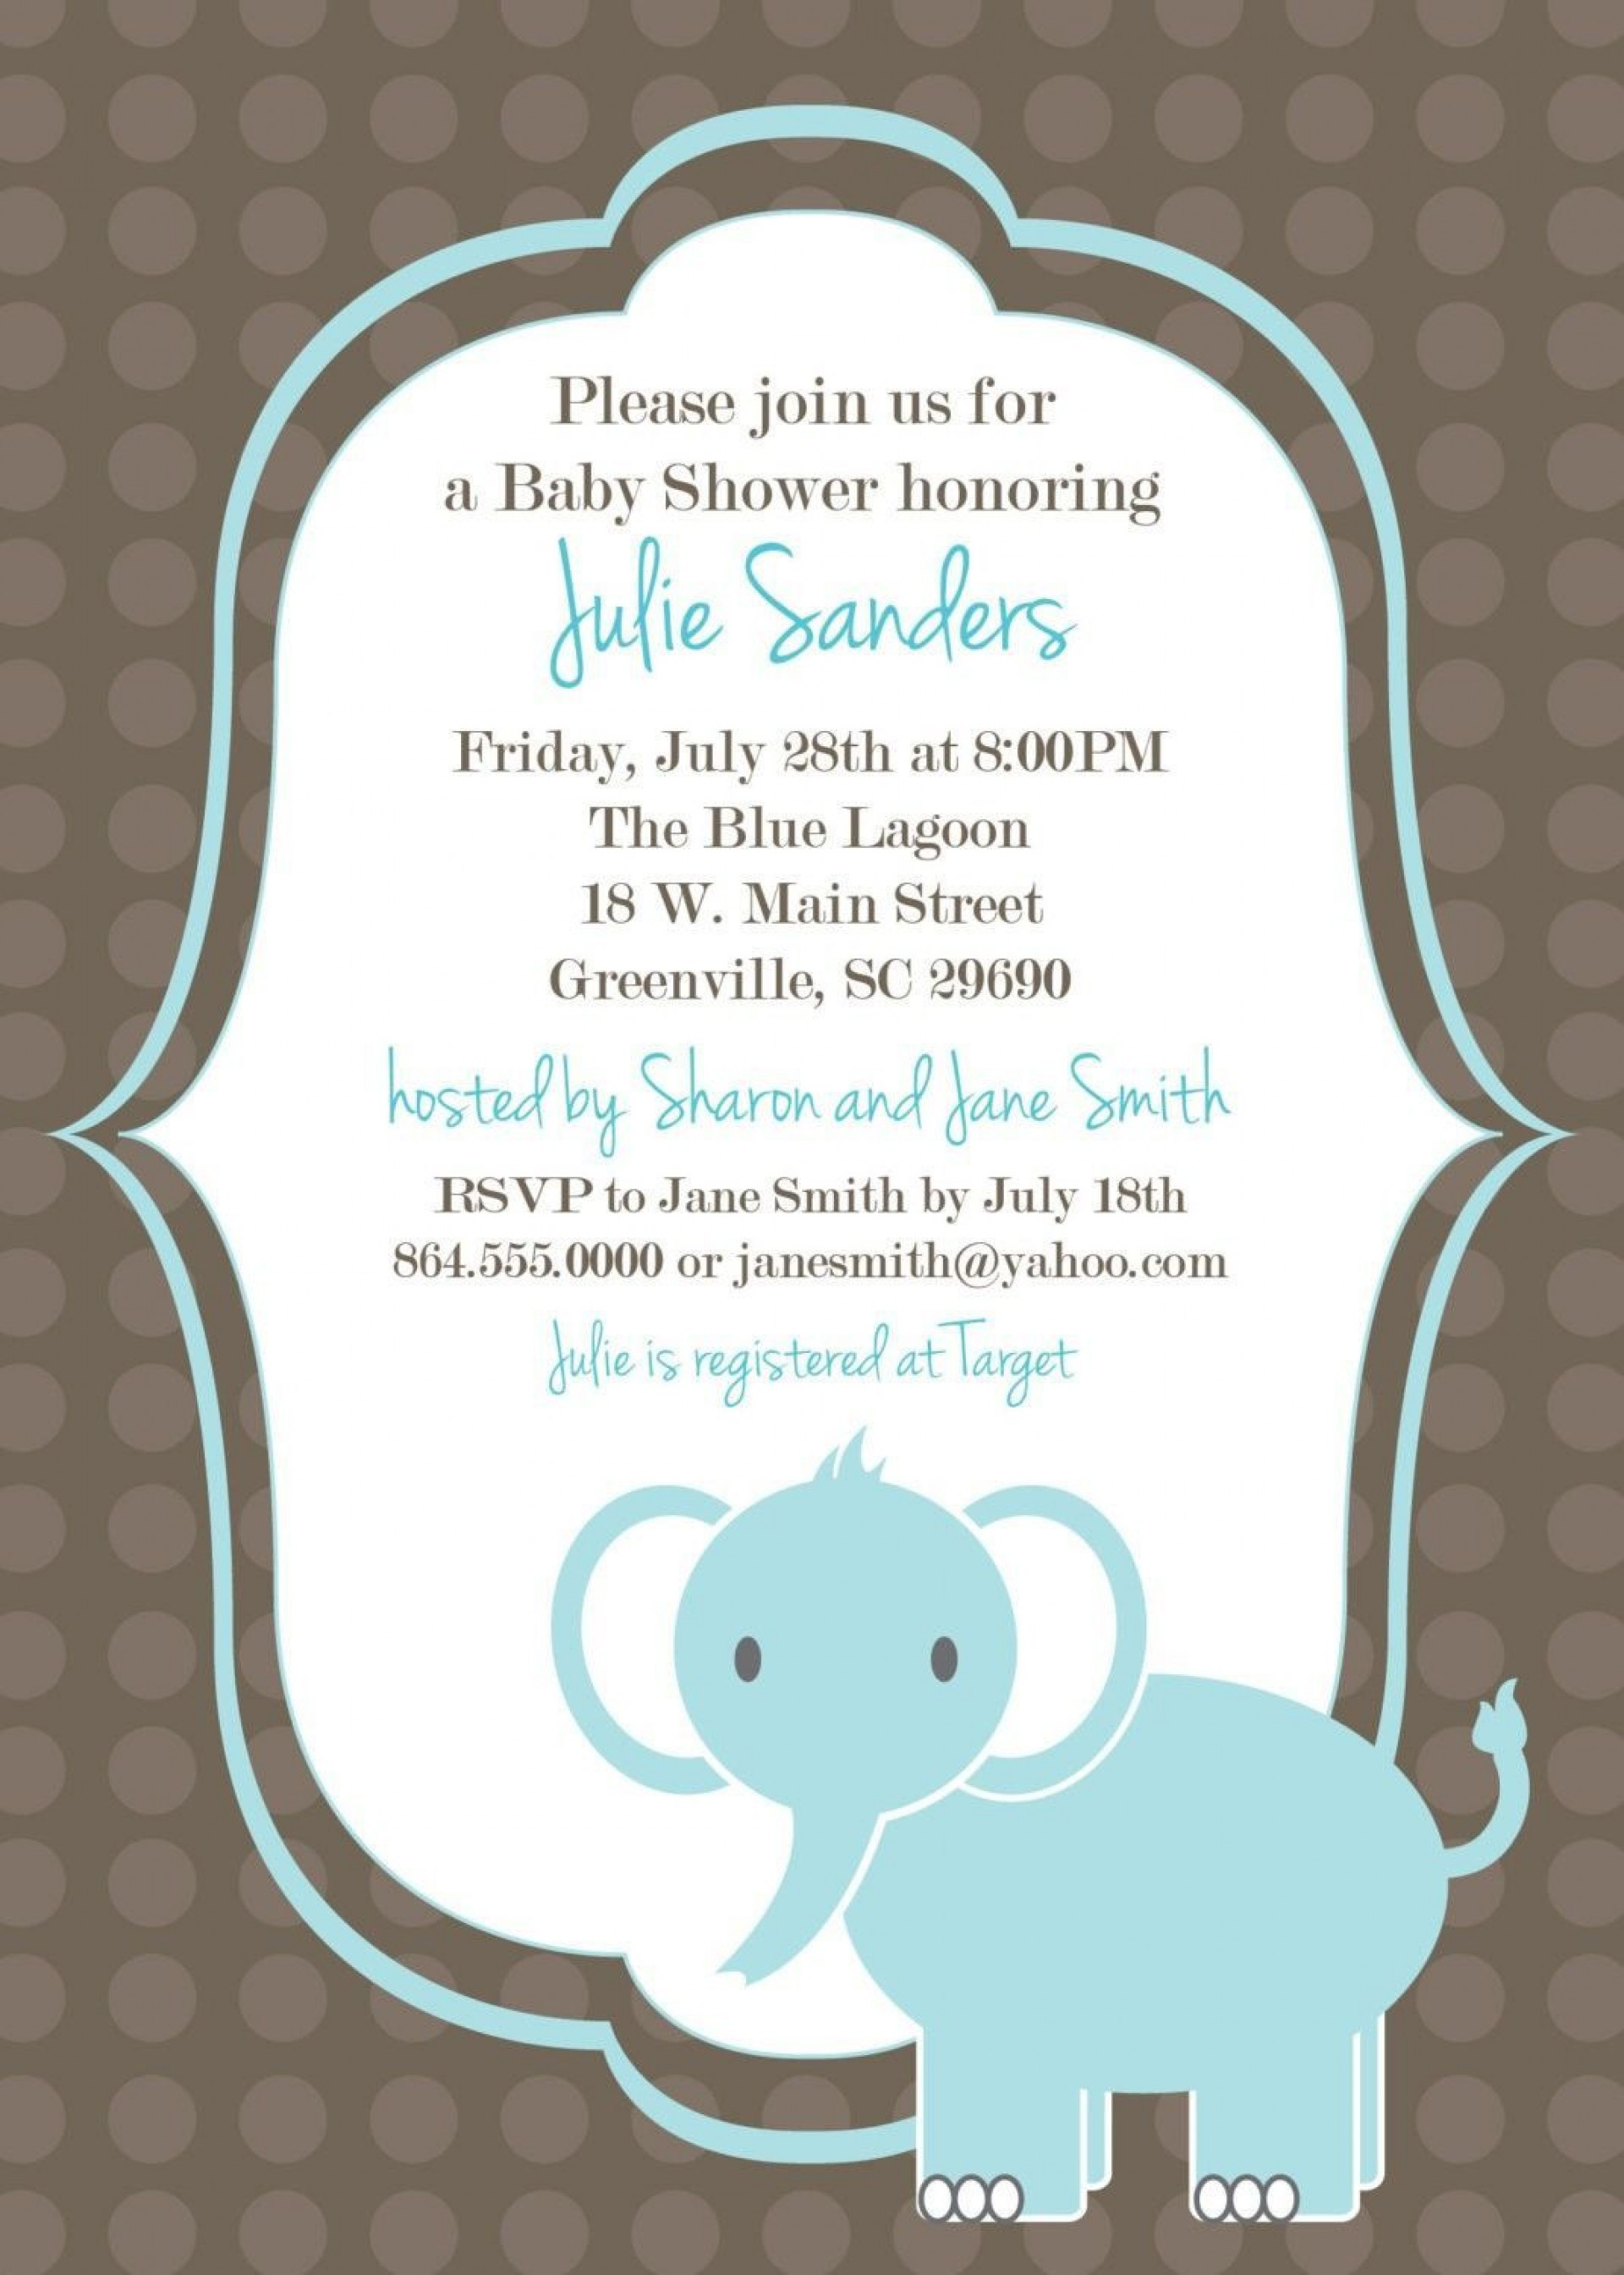 006 Stunning Free Baby Shower Invitation Printable Boy High Resolution  For Twin And Girl1920